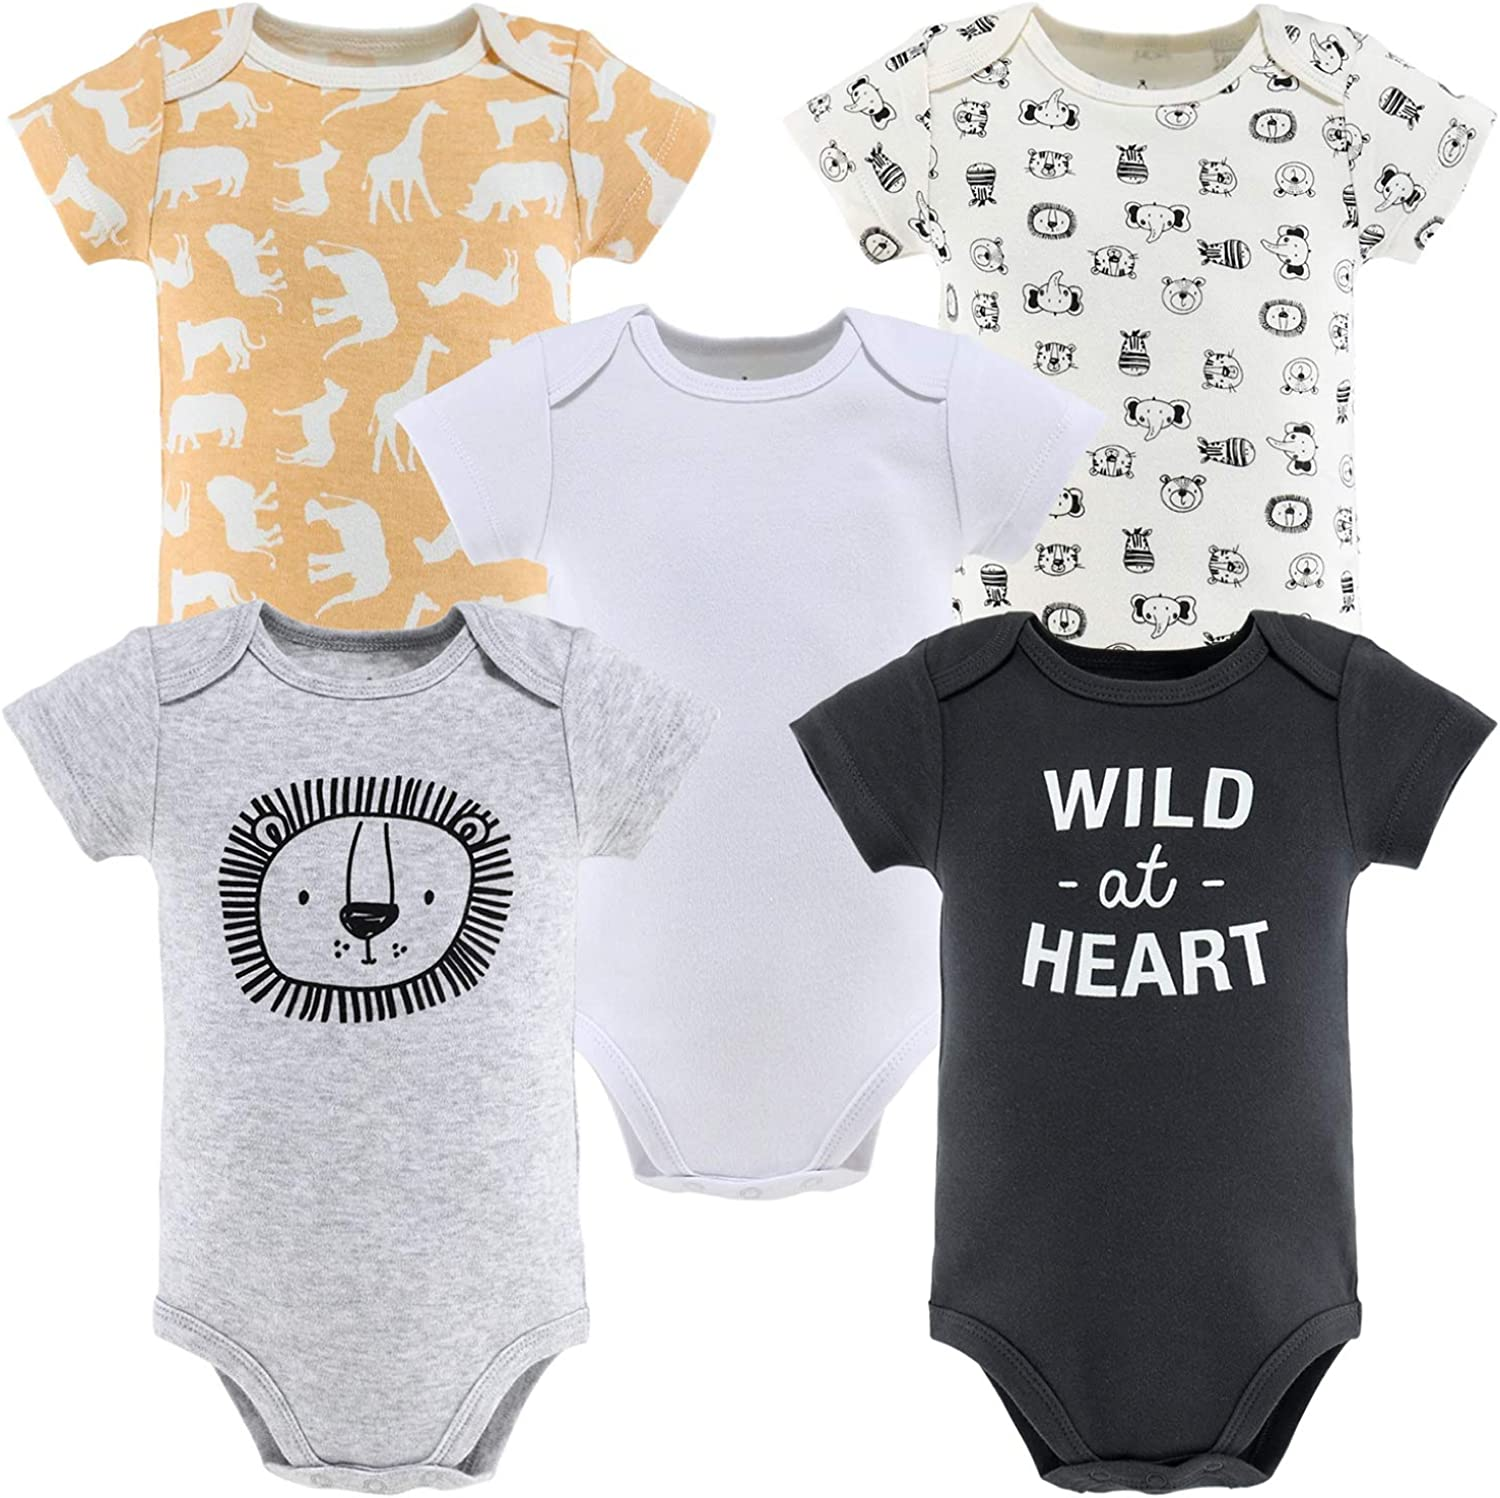 The Peanutshell Short Sleeve Baby Bodysuits for or Girl Boys Opening large release sale 5 popular Set